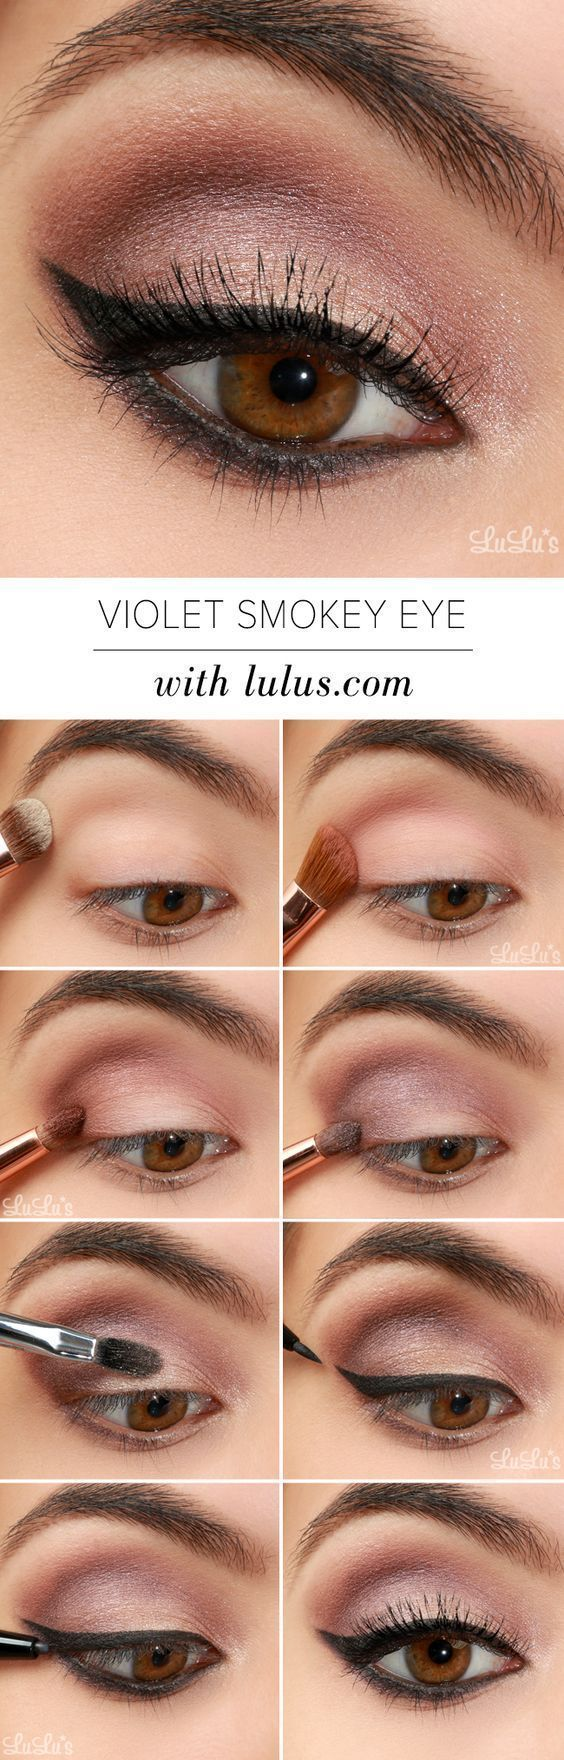 Violet Smokey Eye Makeup Tutorial offers a dreamy neutral look with a subtle pop of color! Give it a whirl and follow step-by-step. http://blog.lulus.com/beauty/lulus-how-to-violet-smokey-eye-makeup-tutorial/::